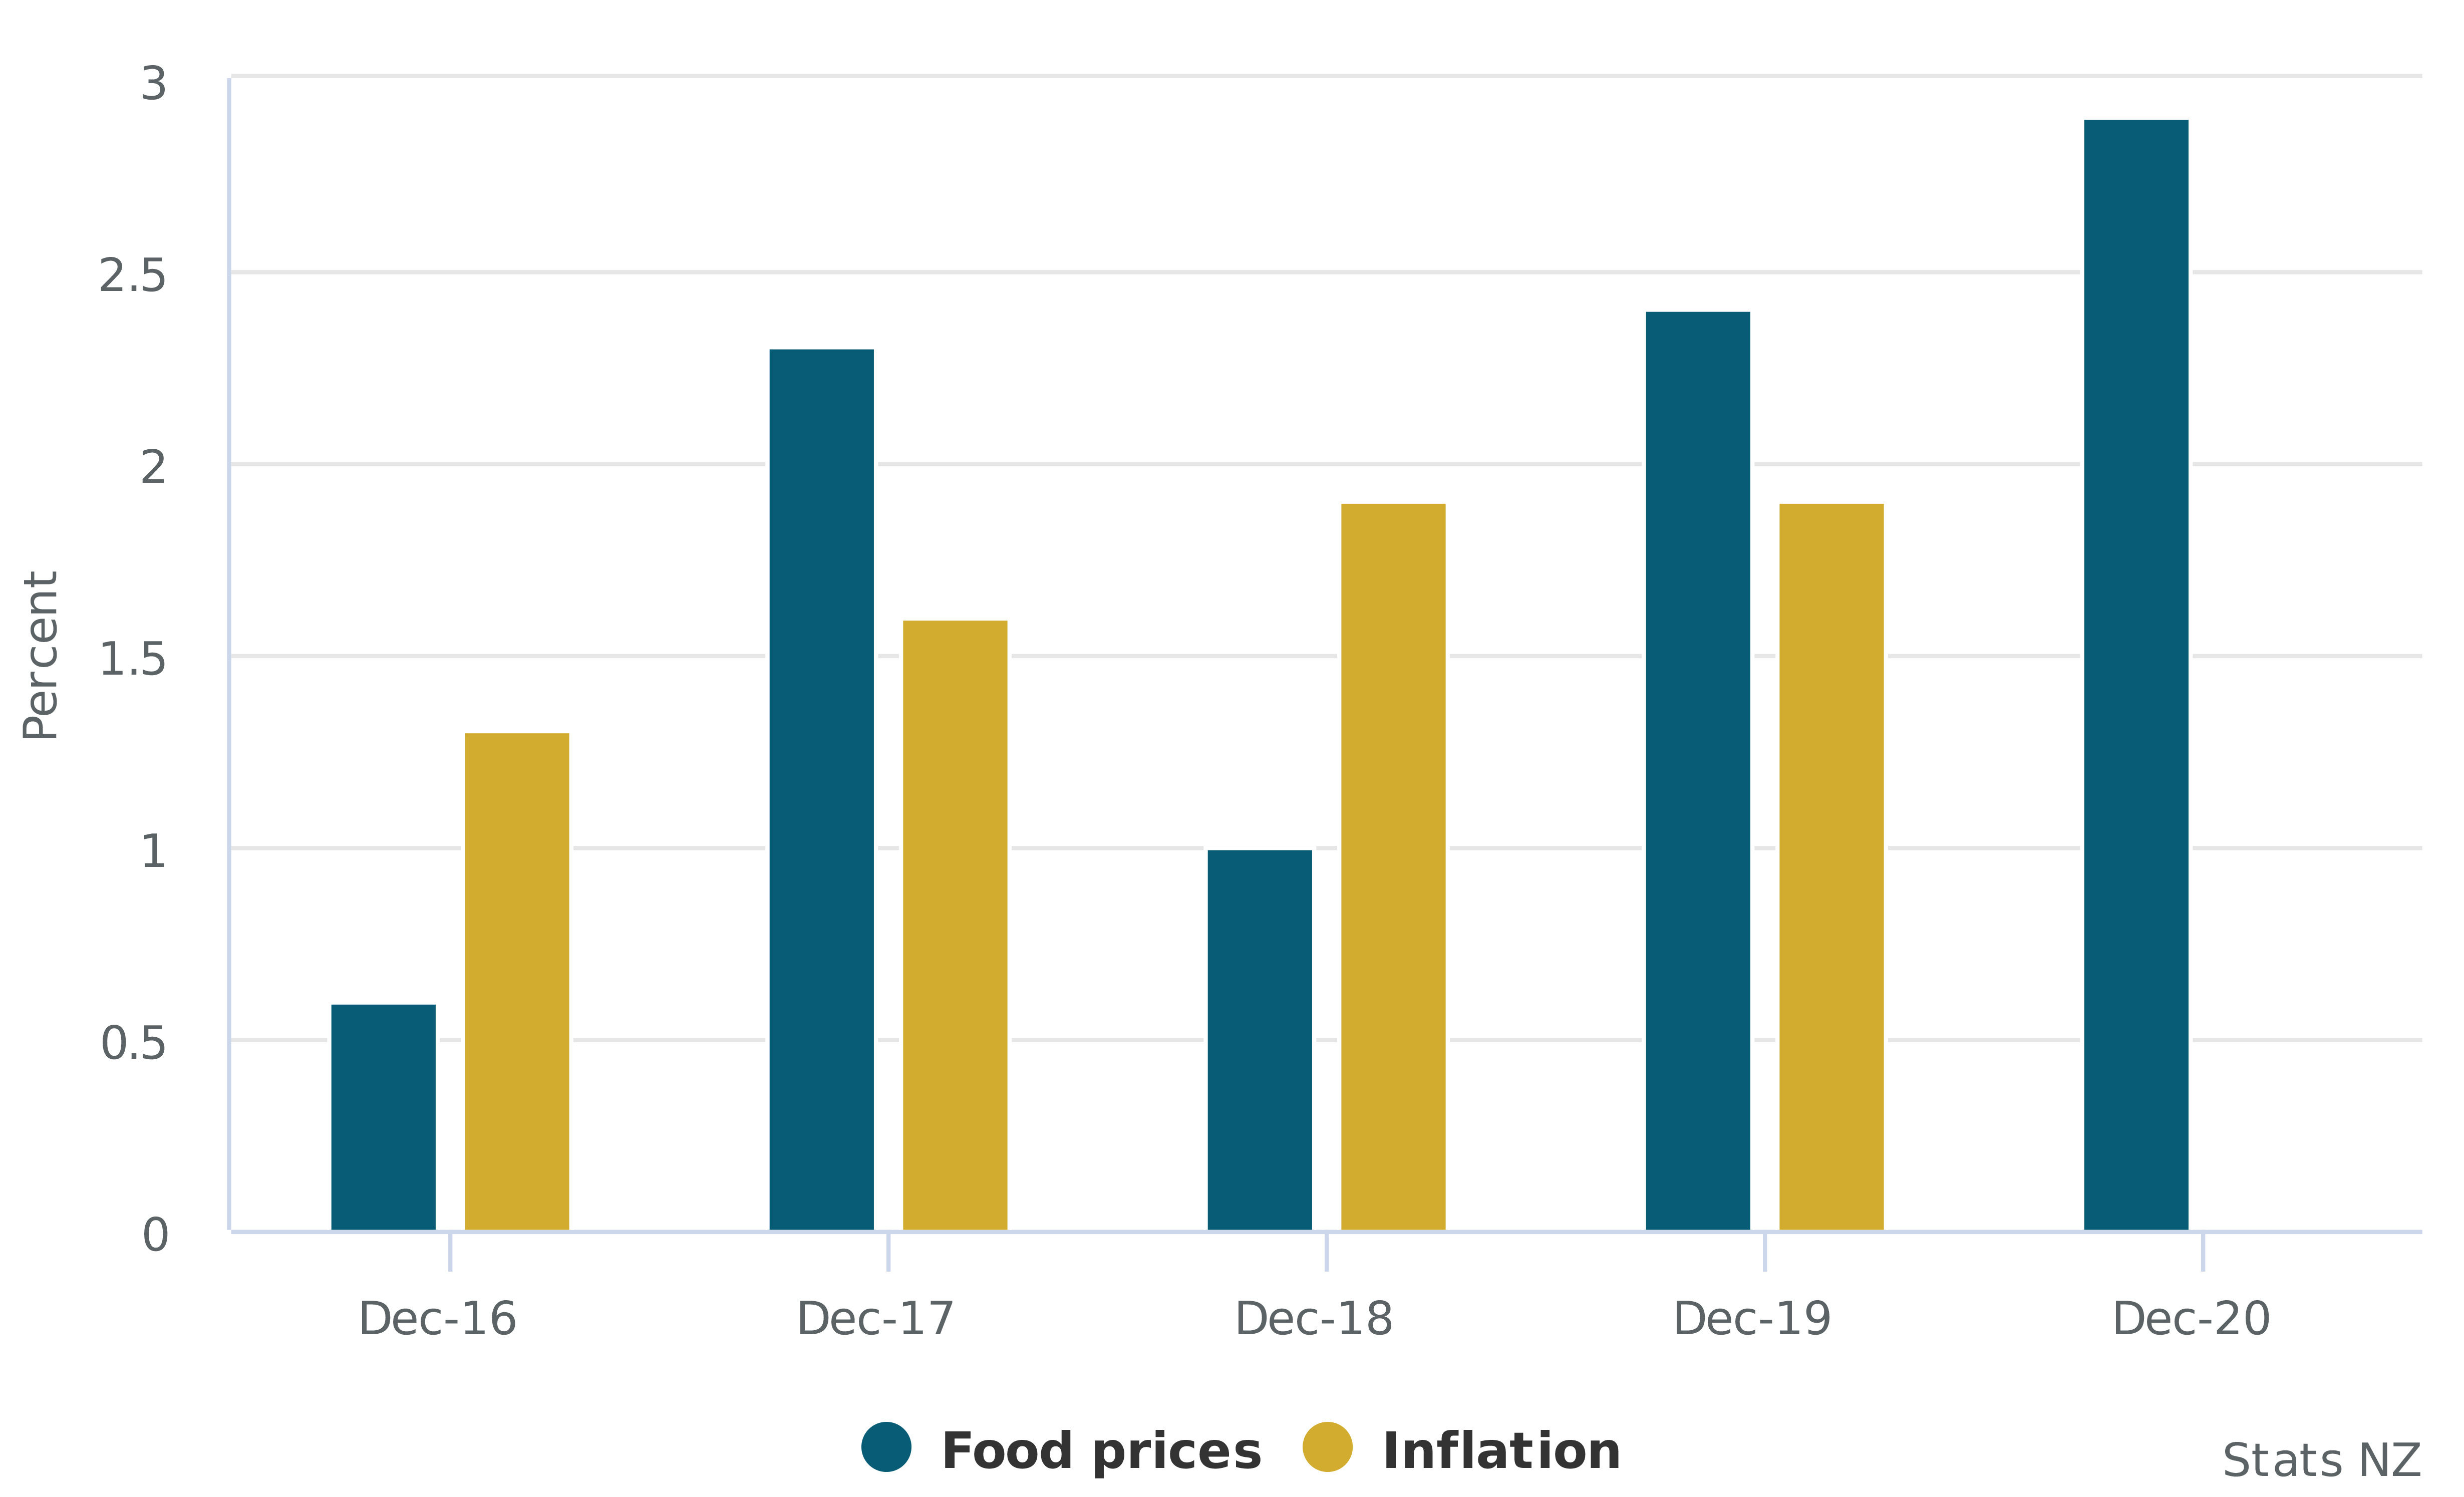 Annual food prices and inflation, percent change, from December 2016–2020. Credit Stats NZ